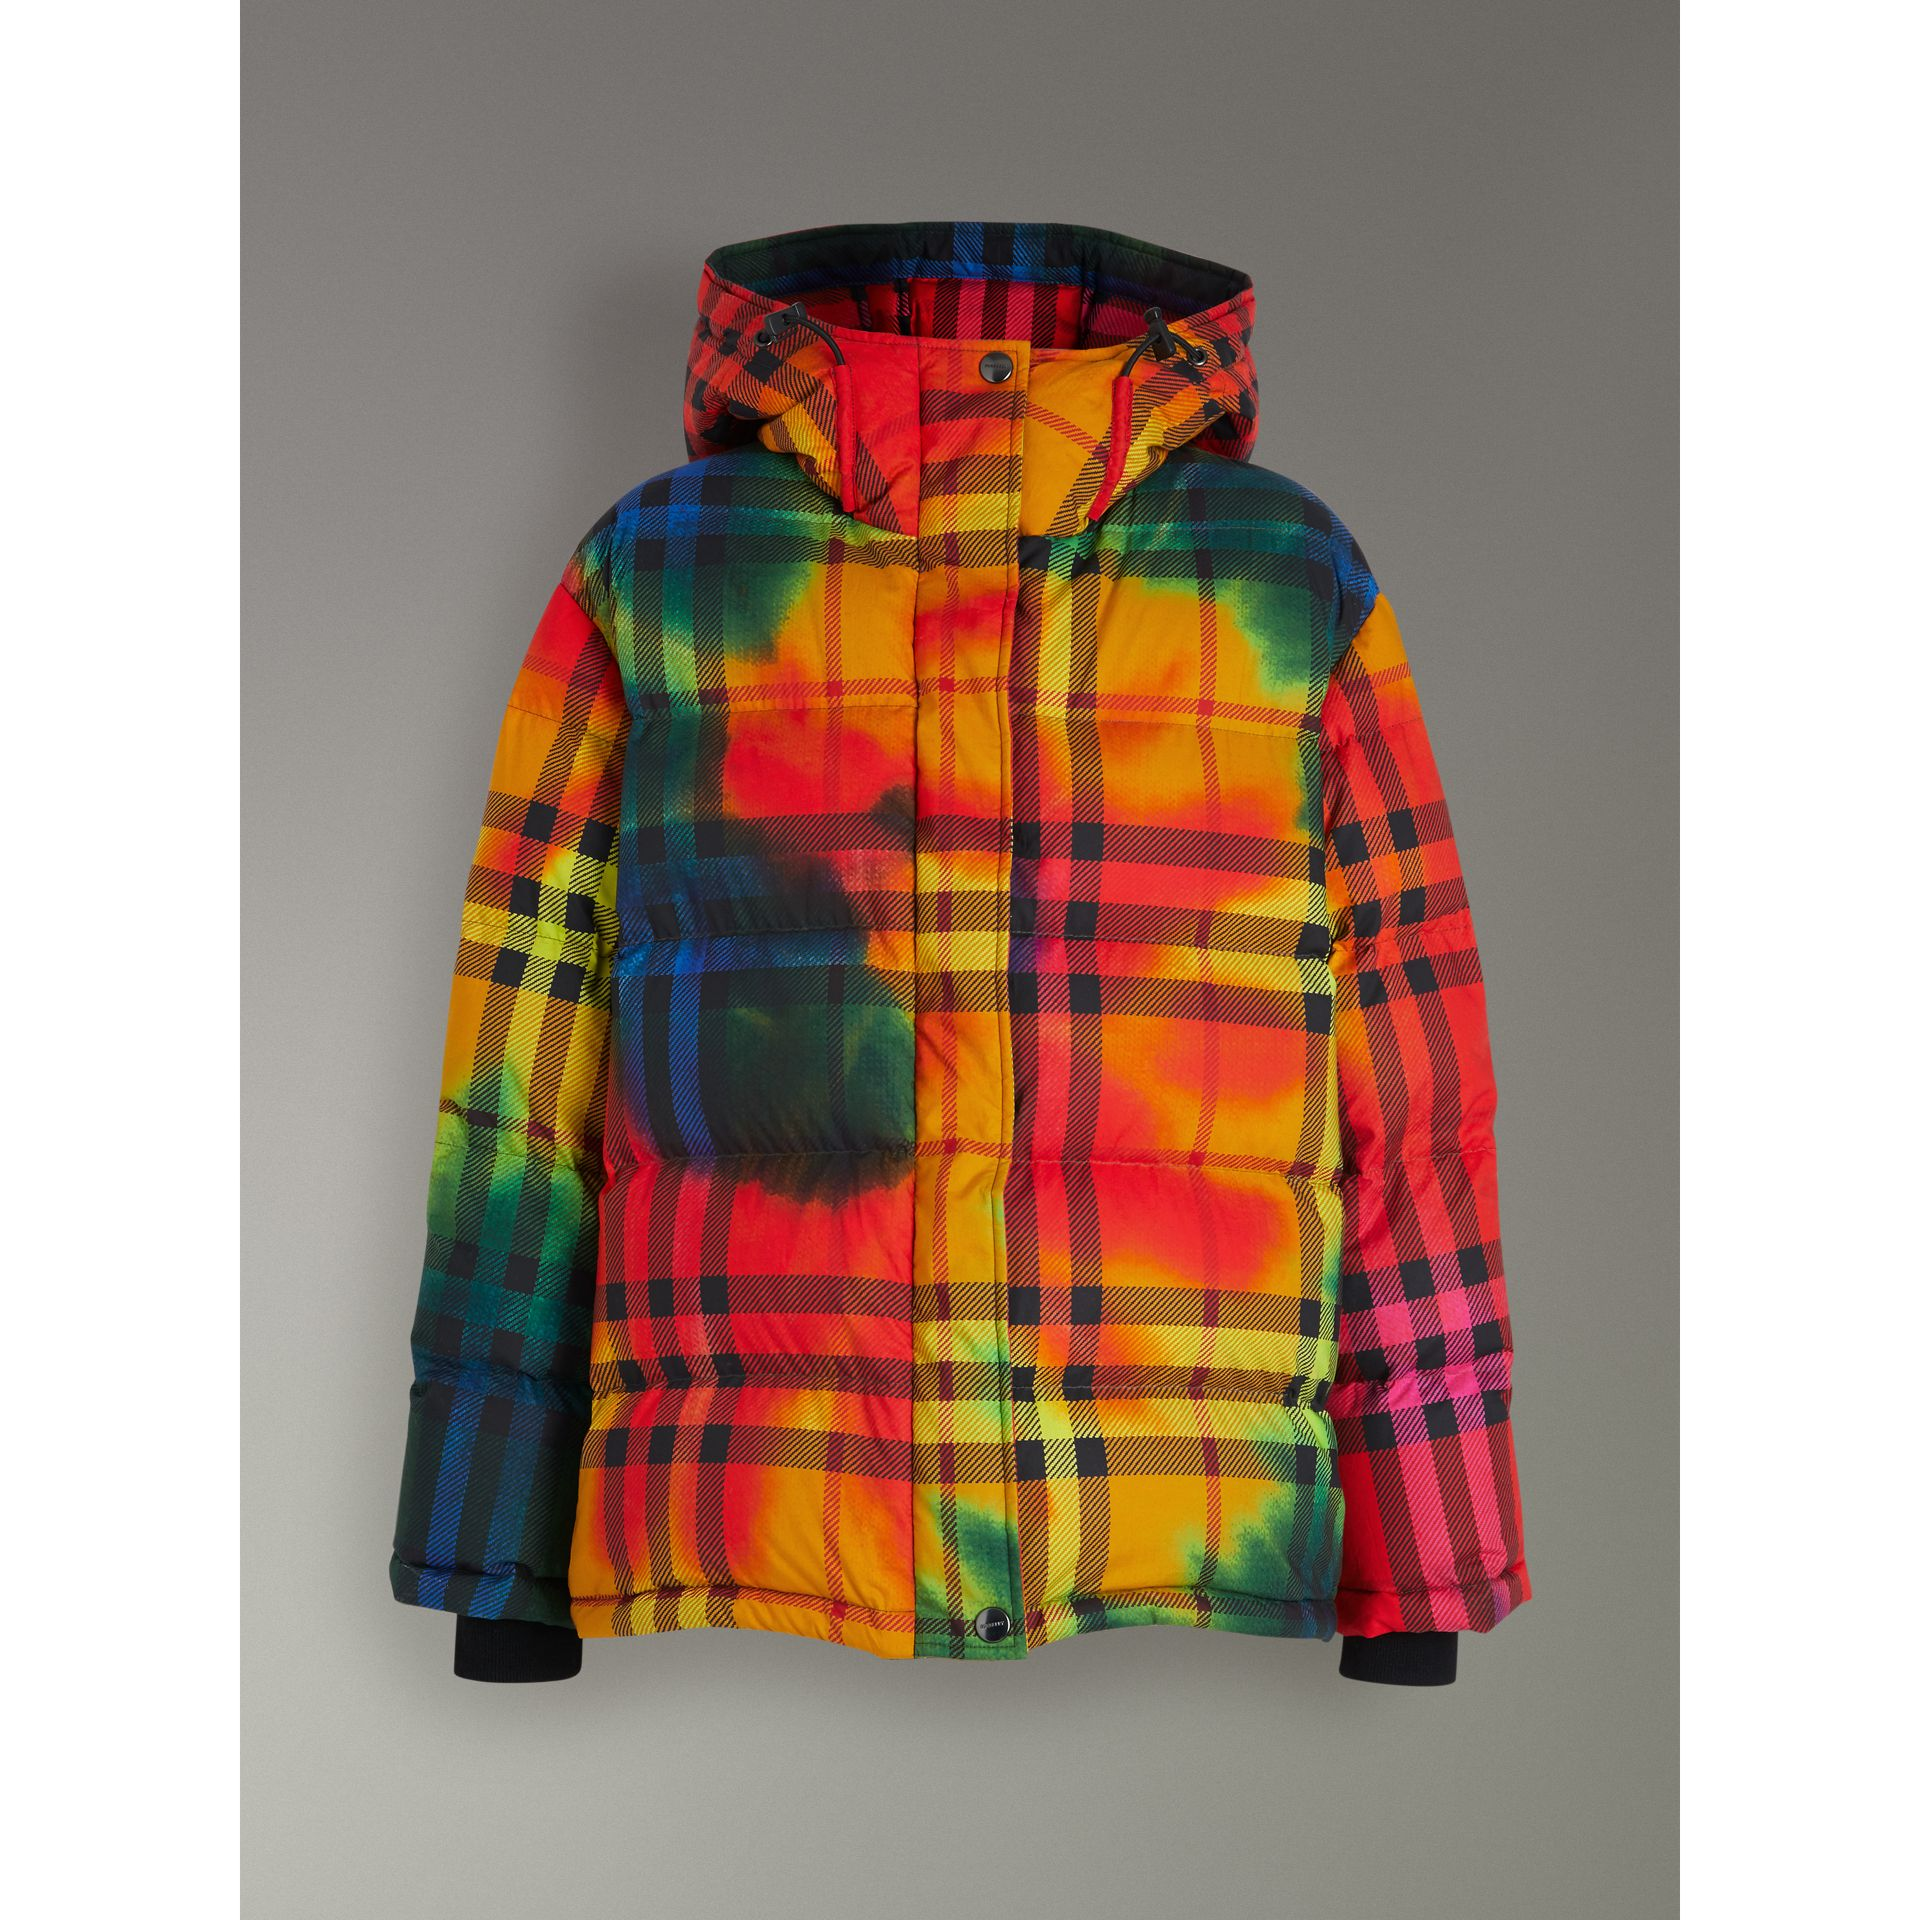 Tie-dye Print Vintage Check Puffer Jacket in Multicolour - Women | Burberry - gallery image 3